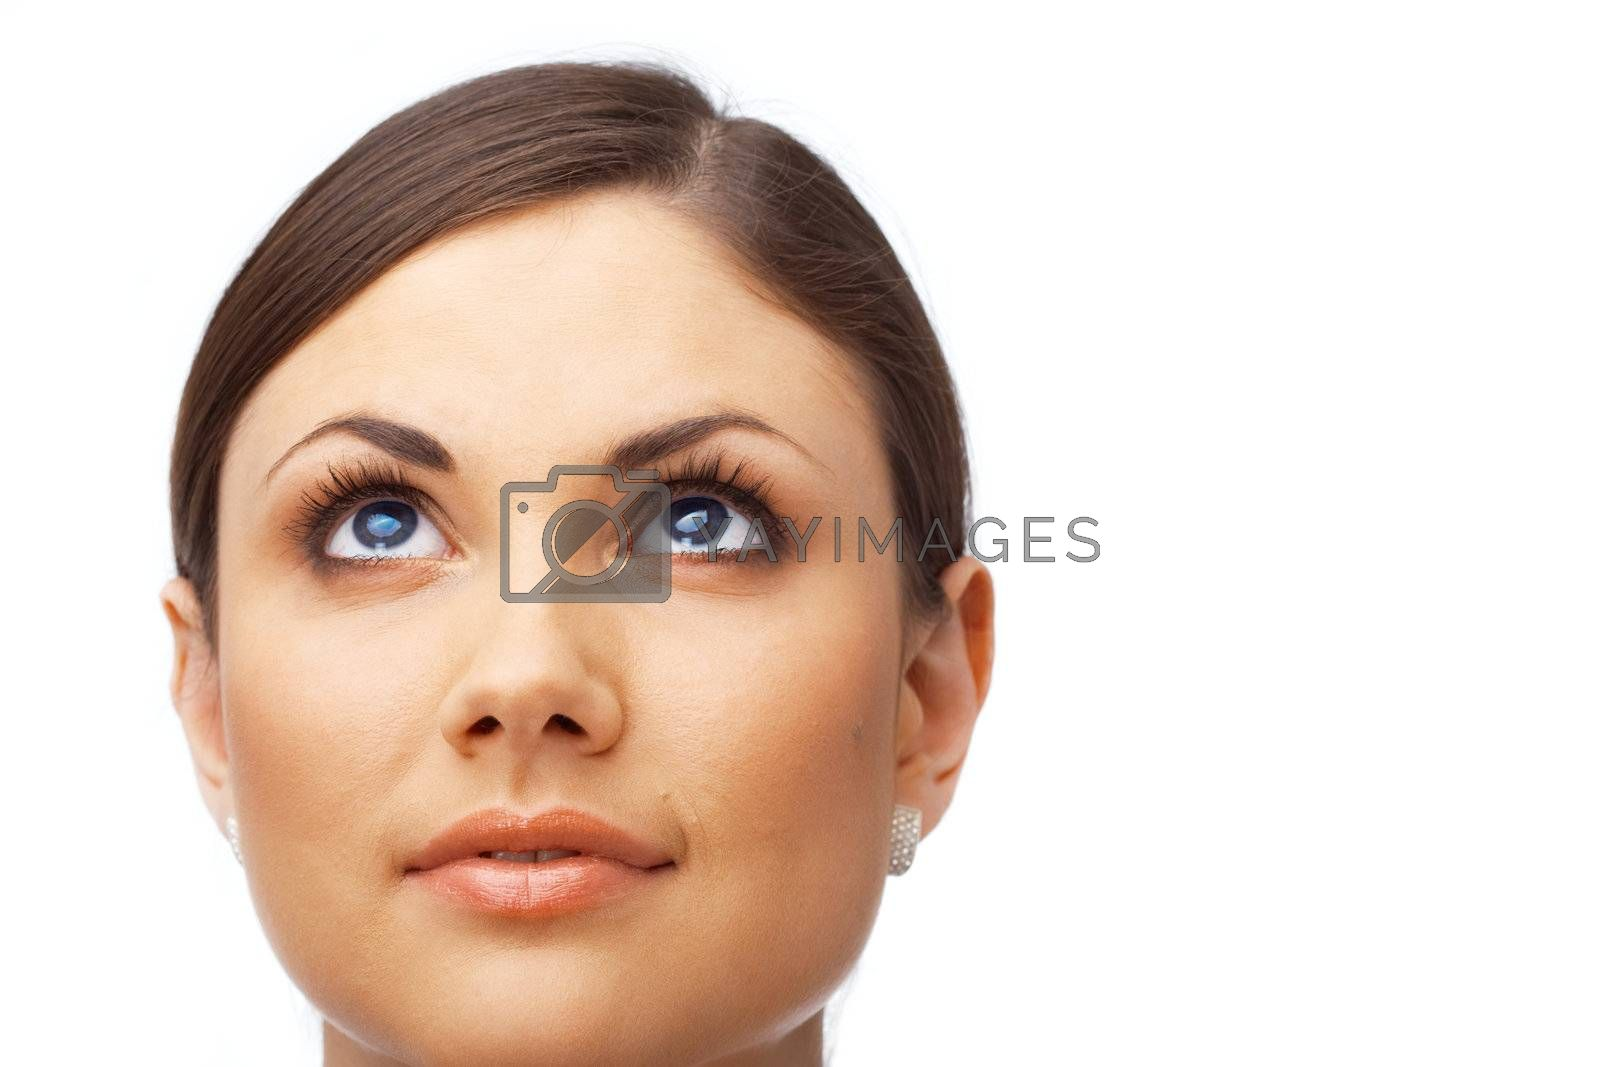 Closeup of a thoughtful young woman looking up over white background